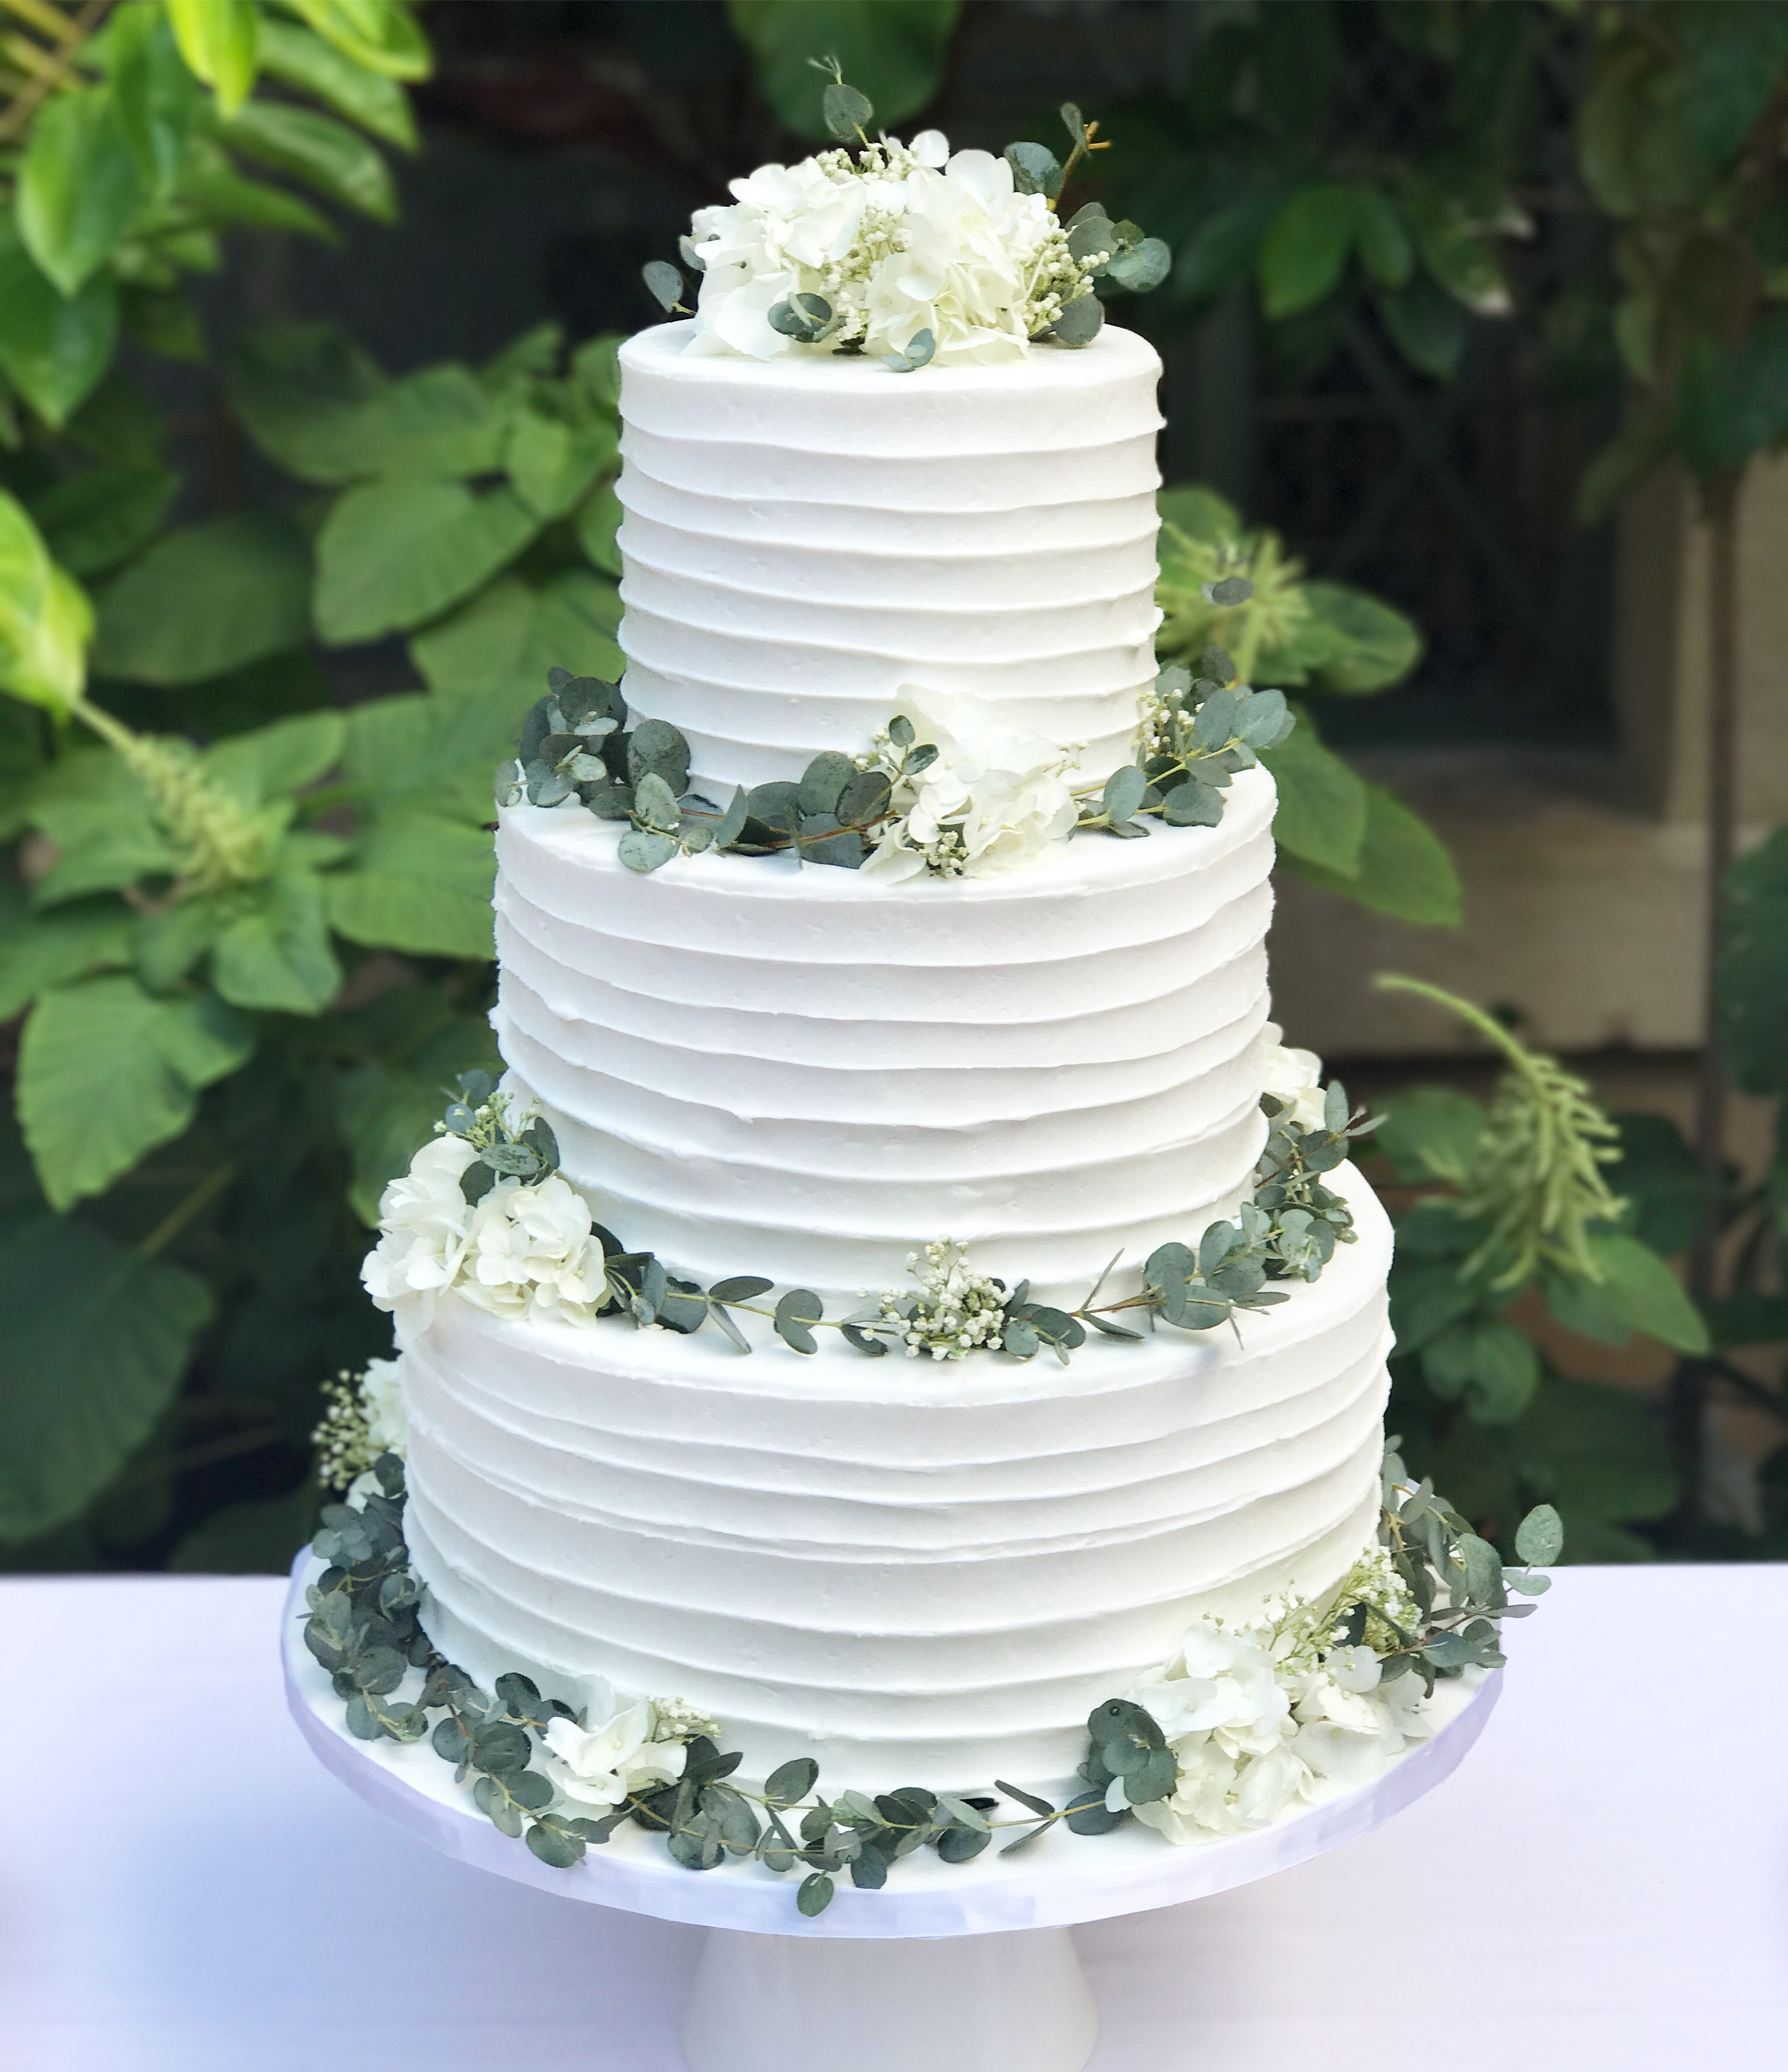 Buttercream Wedding Cake: A Cake Life